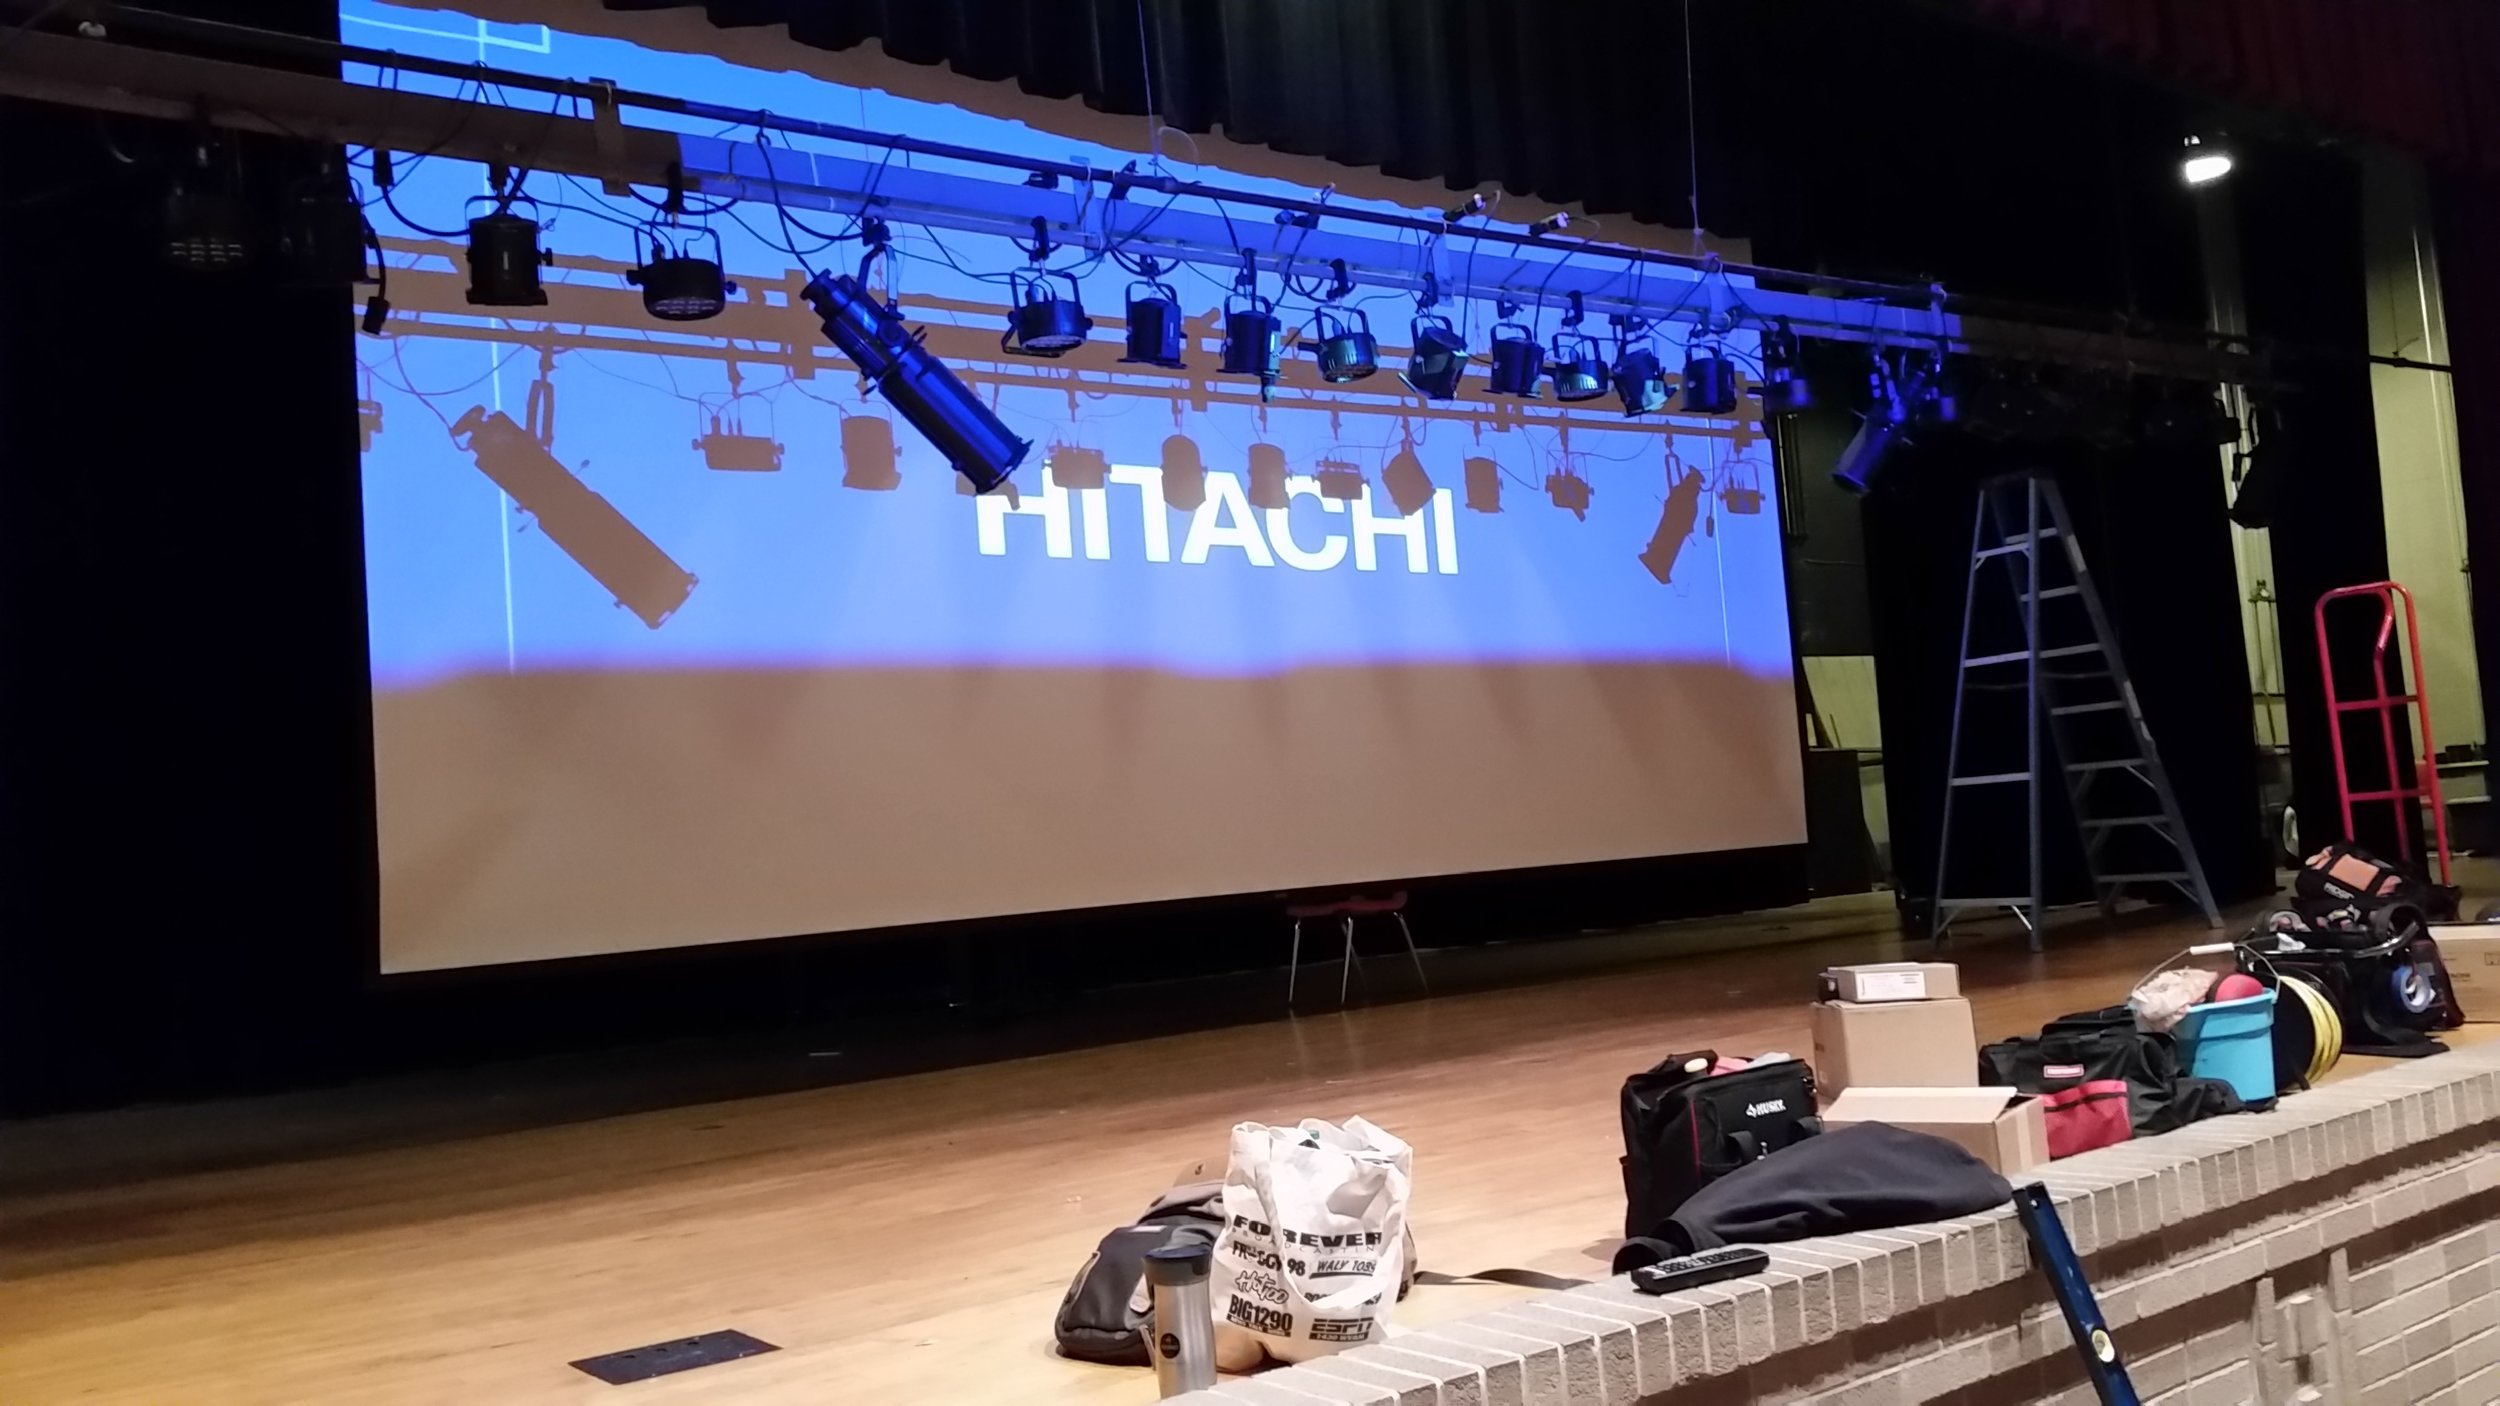 Schoo auditorium sound and video system